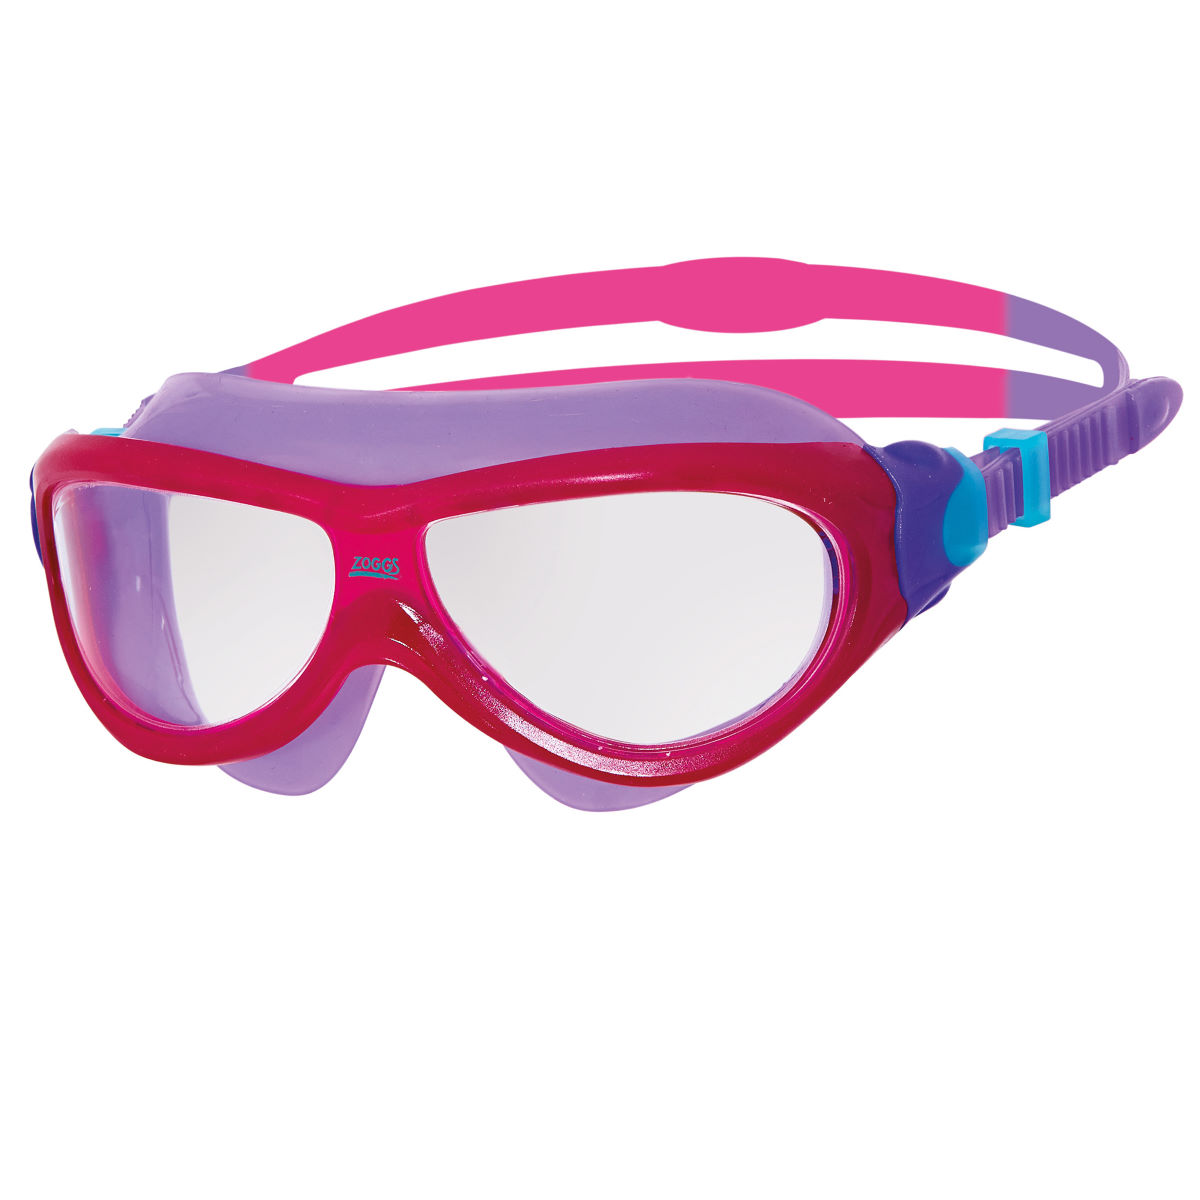 Masque Enfant Zoggs Phantom™ - Taille unique Pink/purple/clear